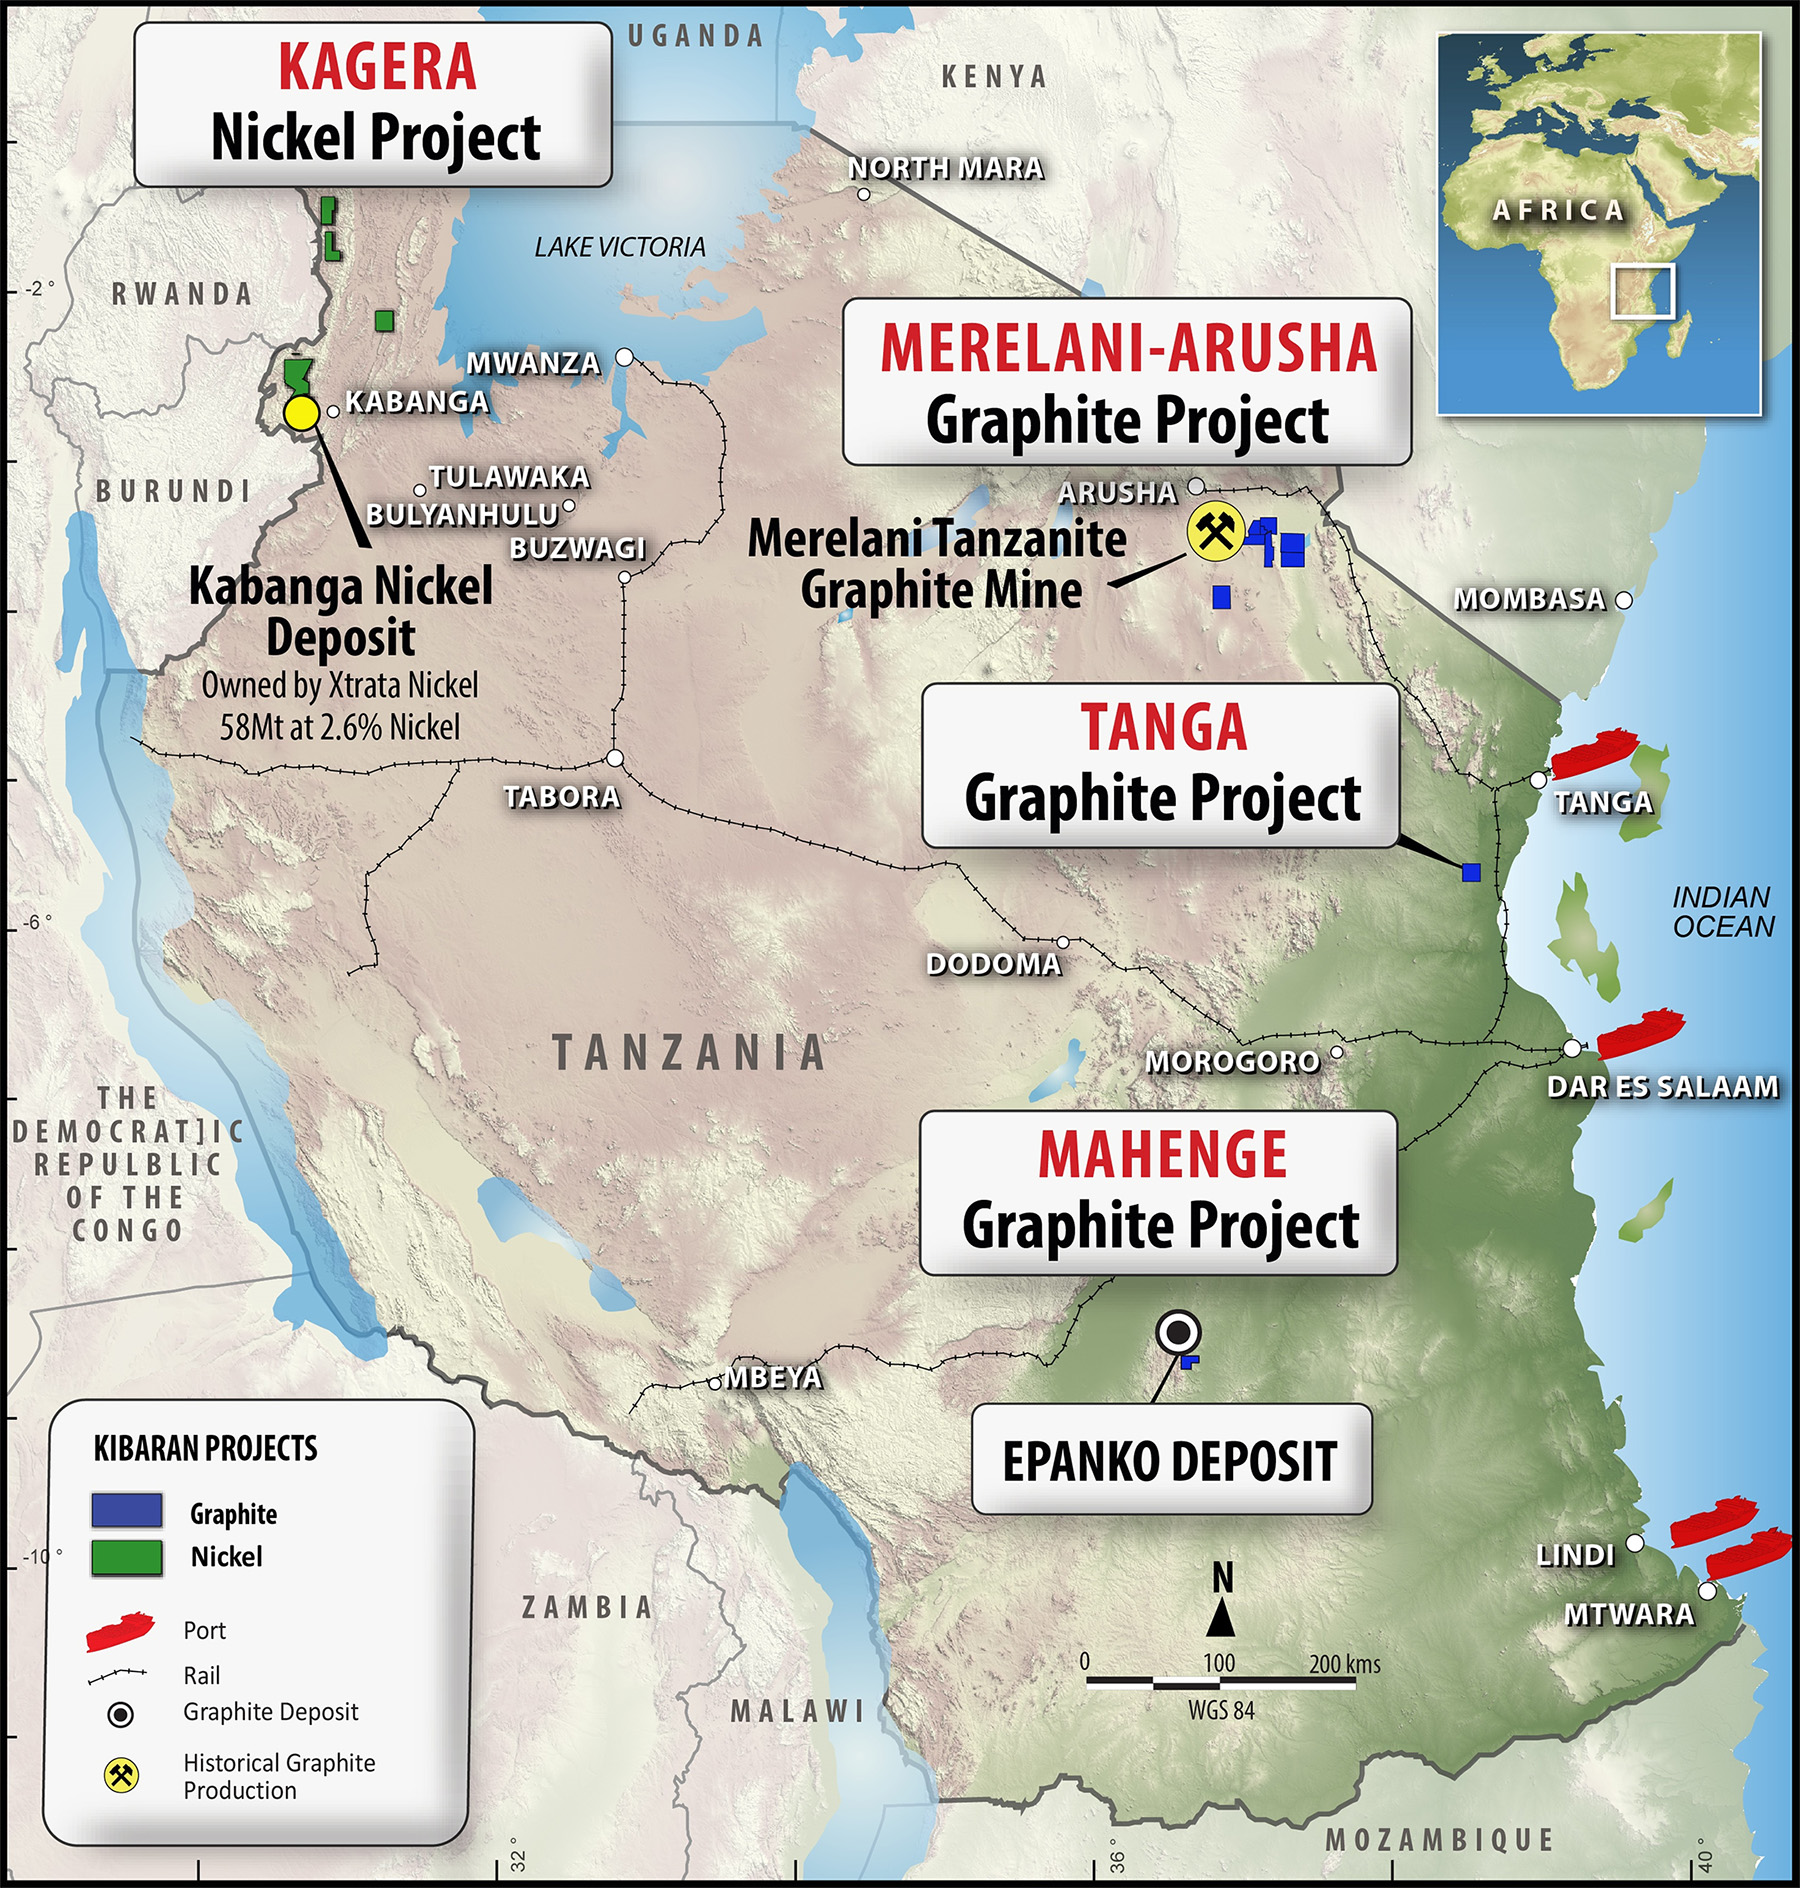 Kibaran Resources issues Epanko Graphite Project update